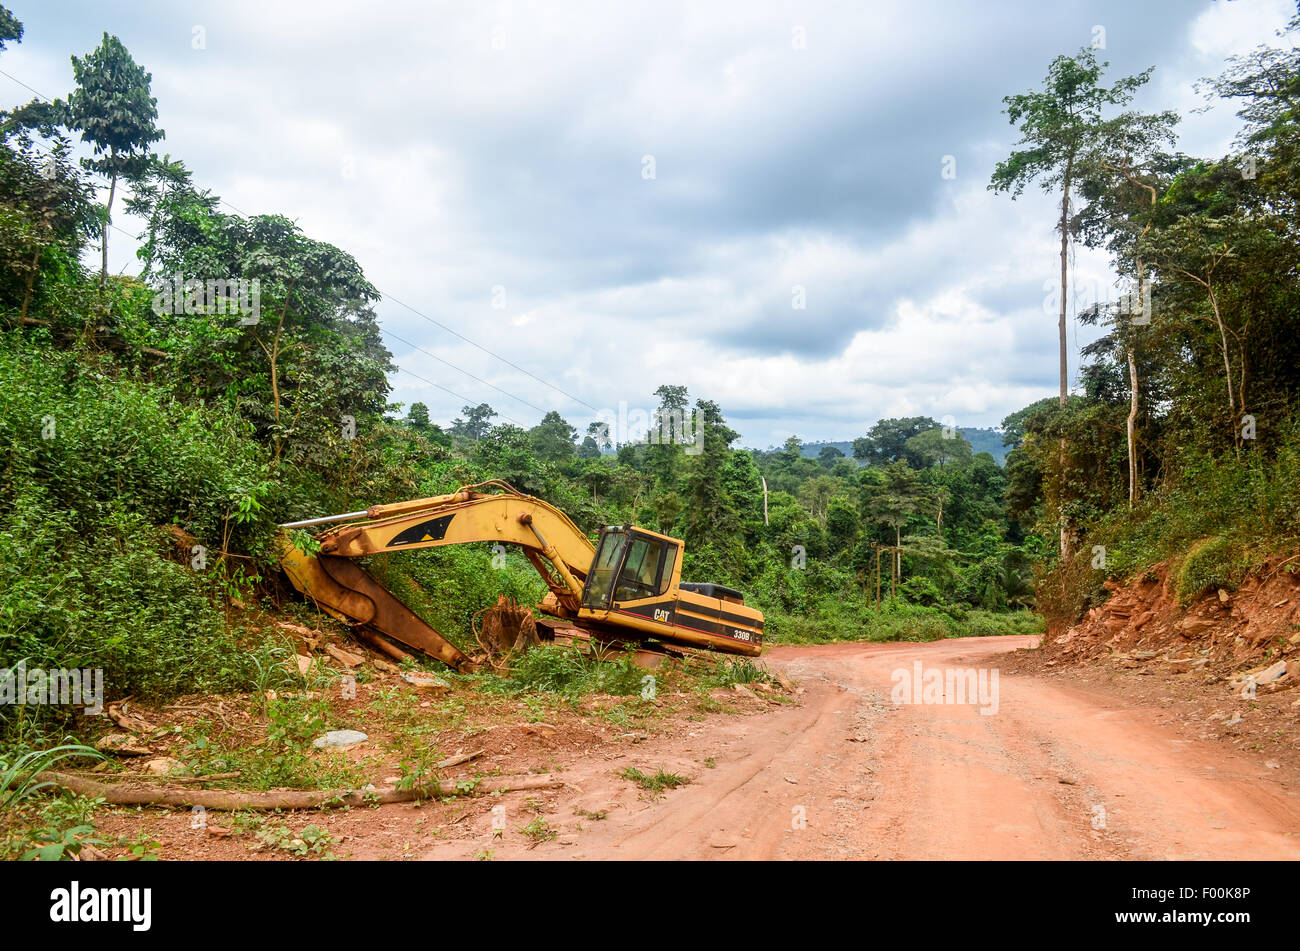 Abandoned excavator by the side of a dirt road in the countryside of Ghana - Stock Image